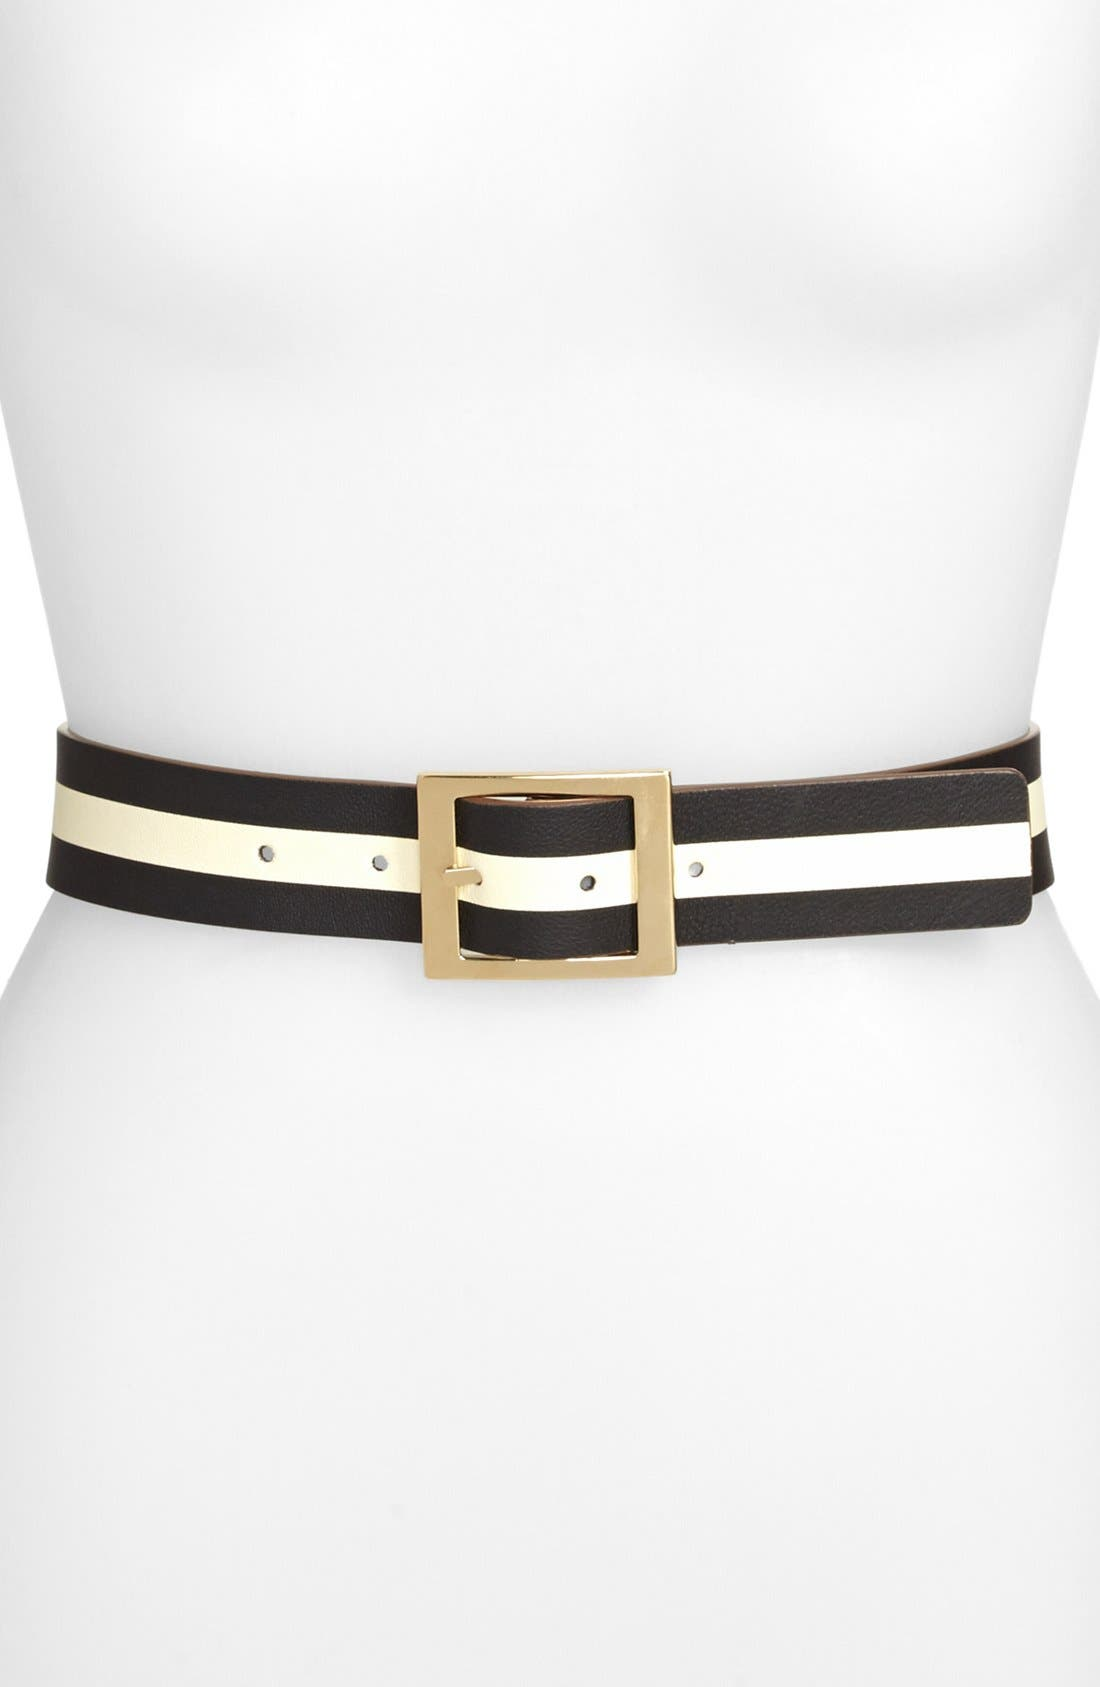 Alternate Image 1 Selected - kate spade new york reversible leather belt